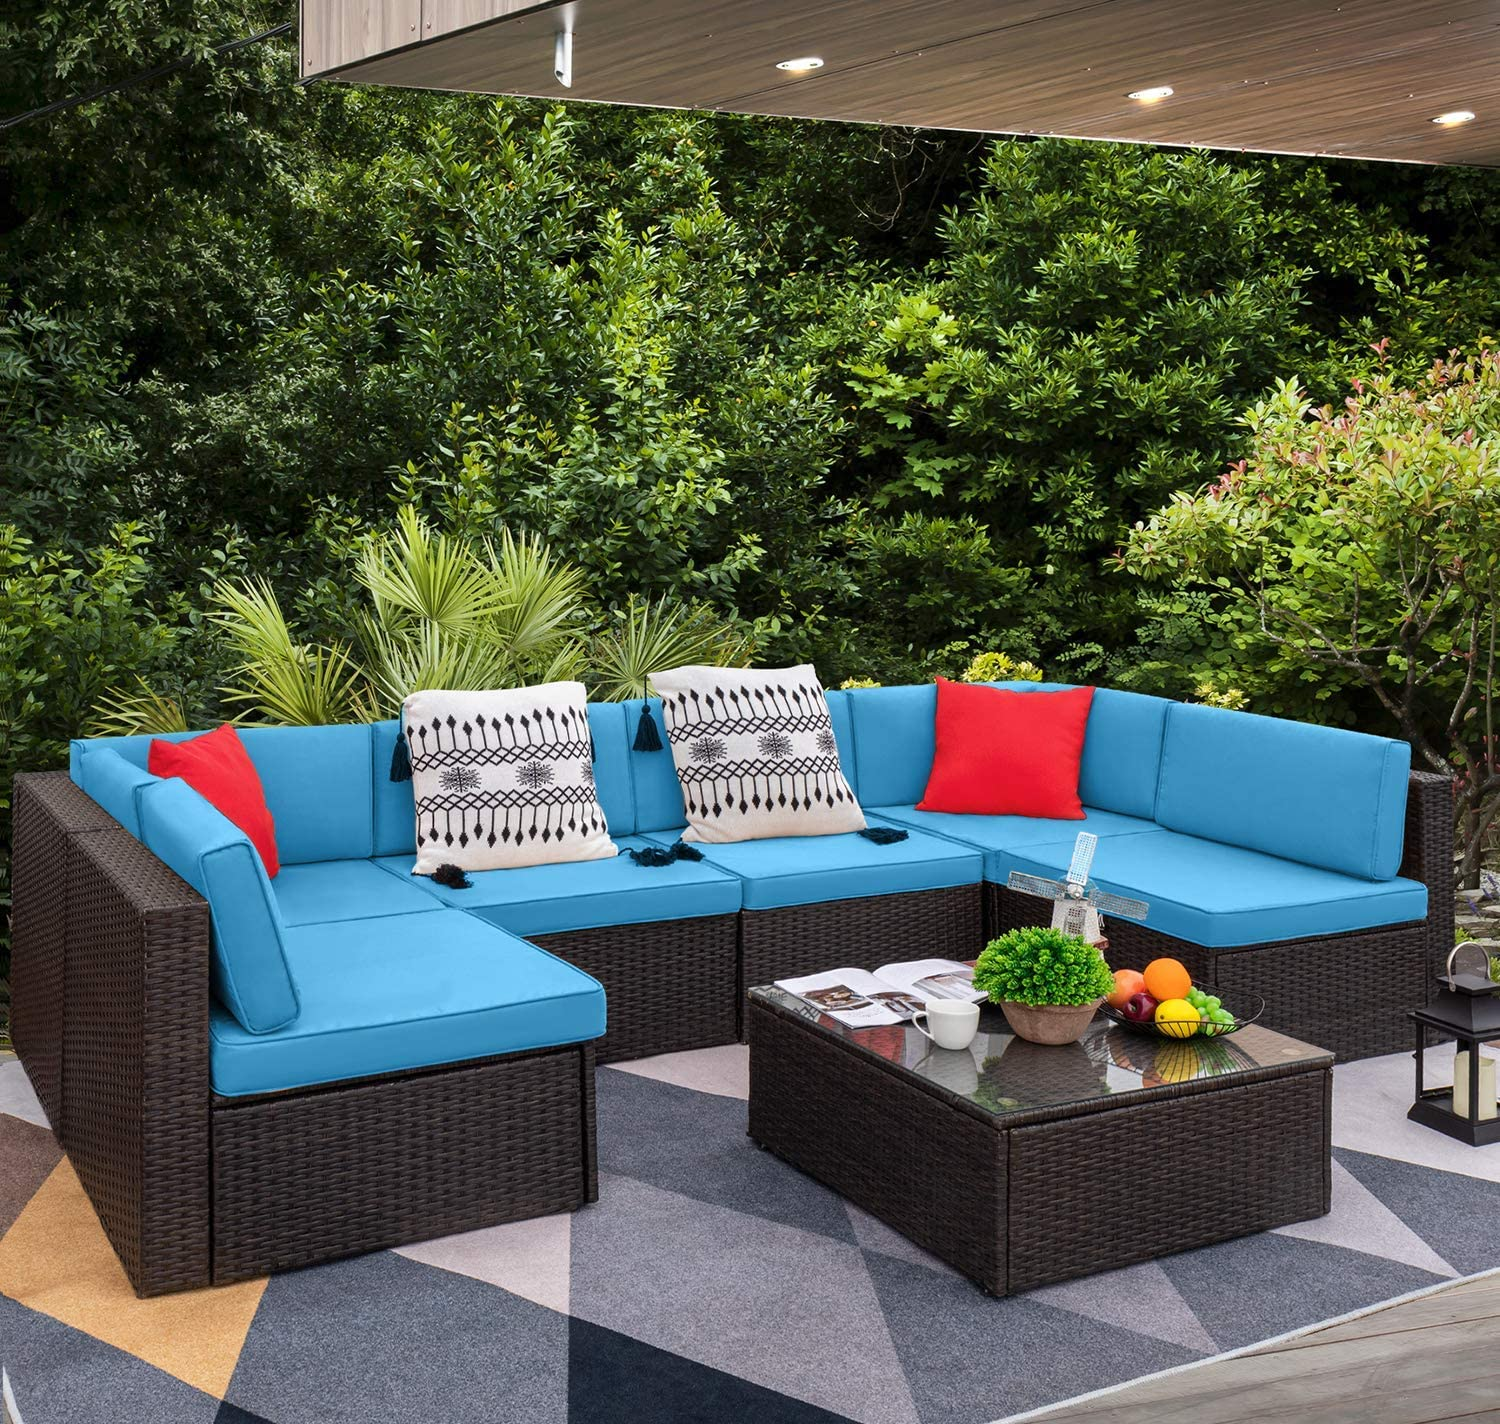 Walnew 7 Pieces Patio Conversation Sets Outdoor Sectional ... on Patio Loveseat Set id=49538